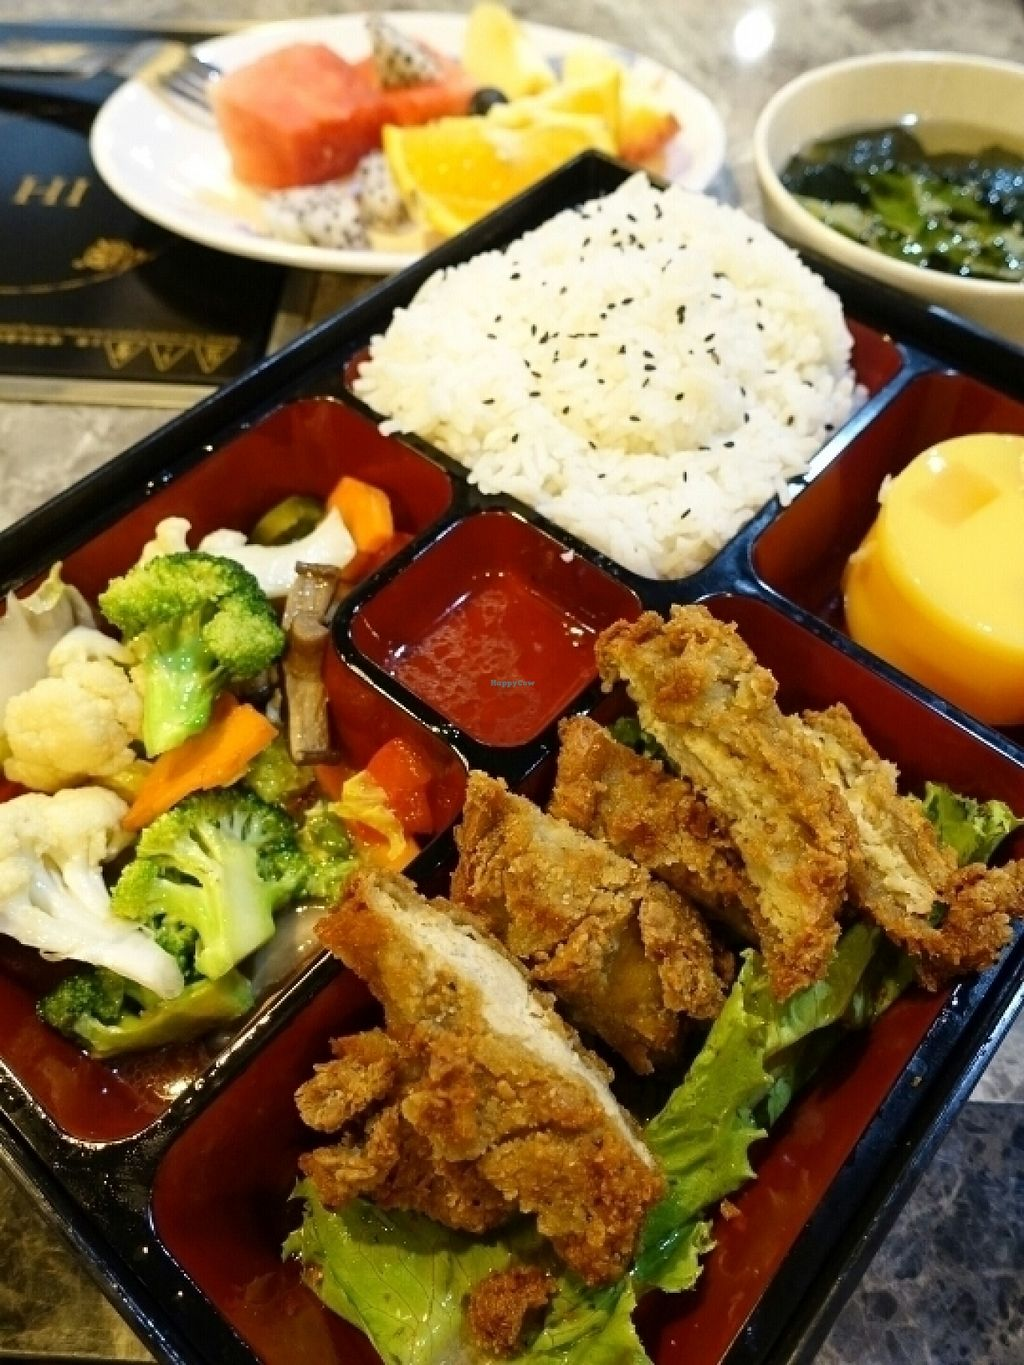 """Photo of CLOSED: Veggie King  by <a href=""""/members/profile/JimmySeah"""">JimmySeah</a> <br/>Vegetarian fried chicken rice set <br/> July 20, 2016  - <a href='/contact/abuse/image/76650/161161'>Report</a>"""